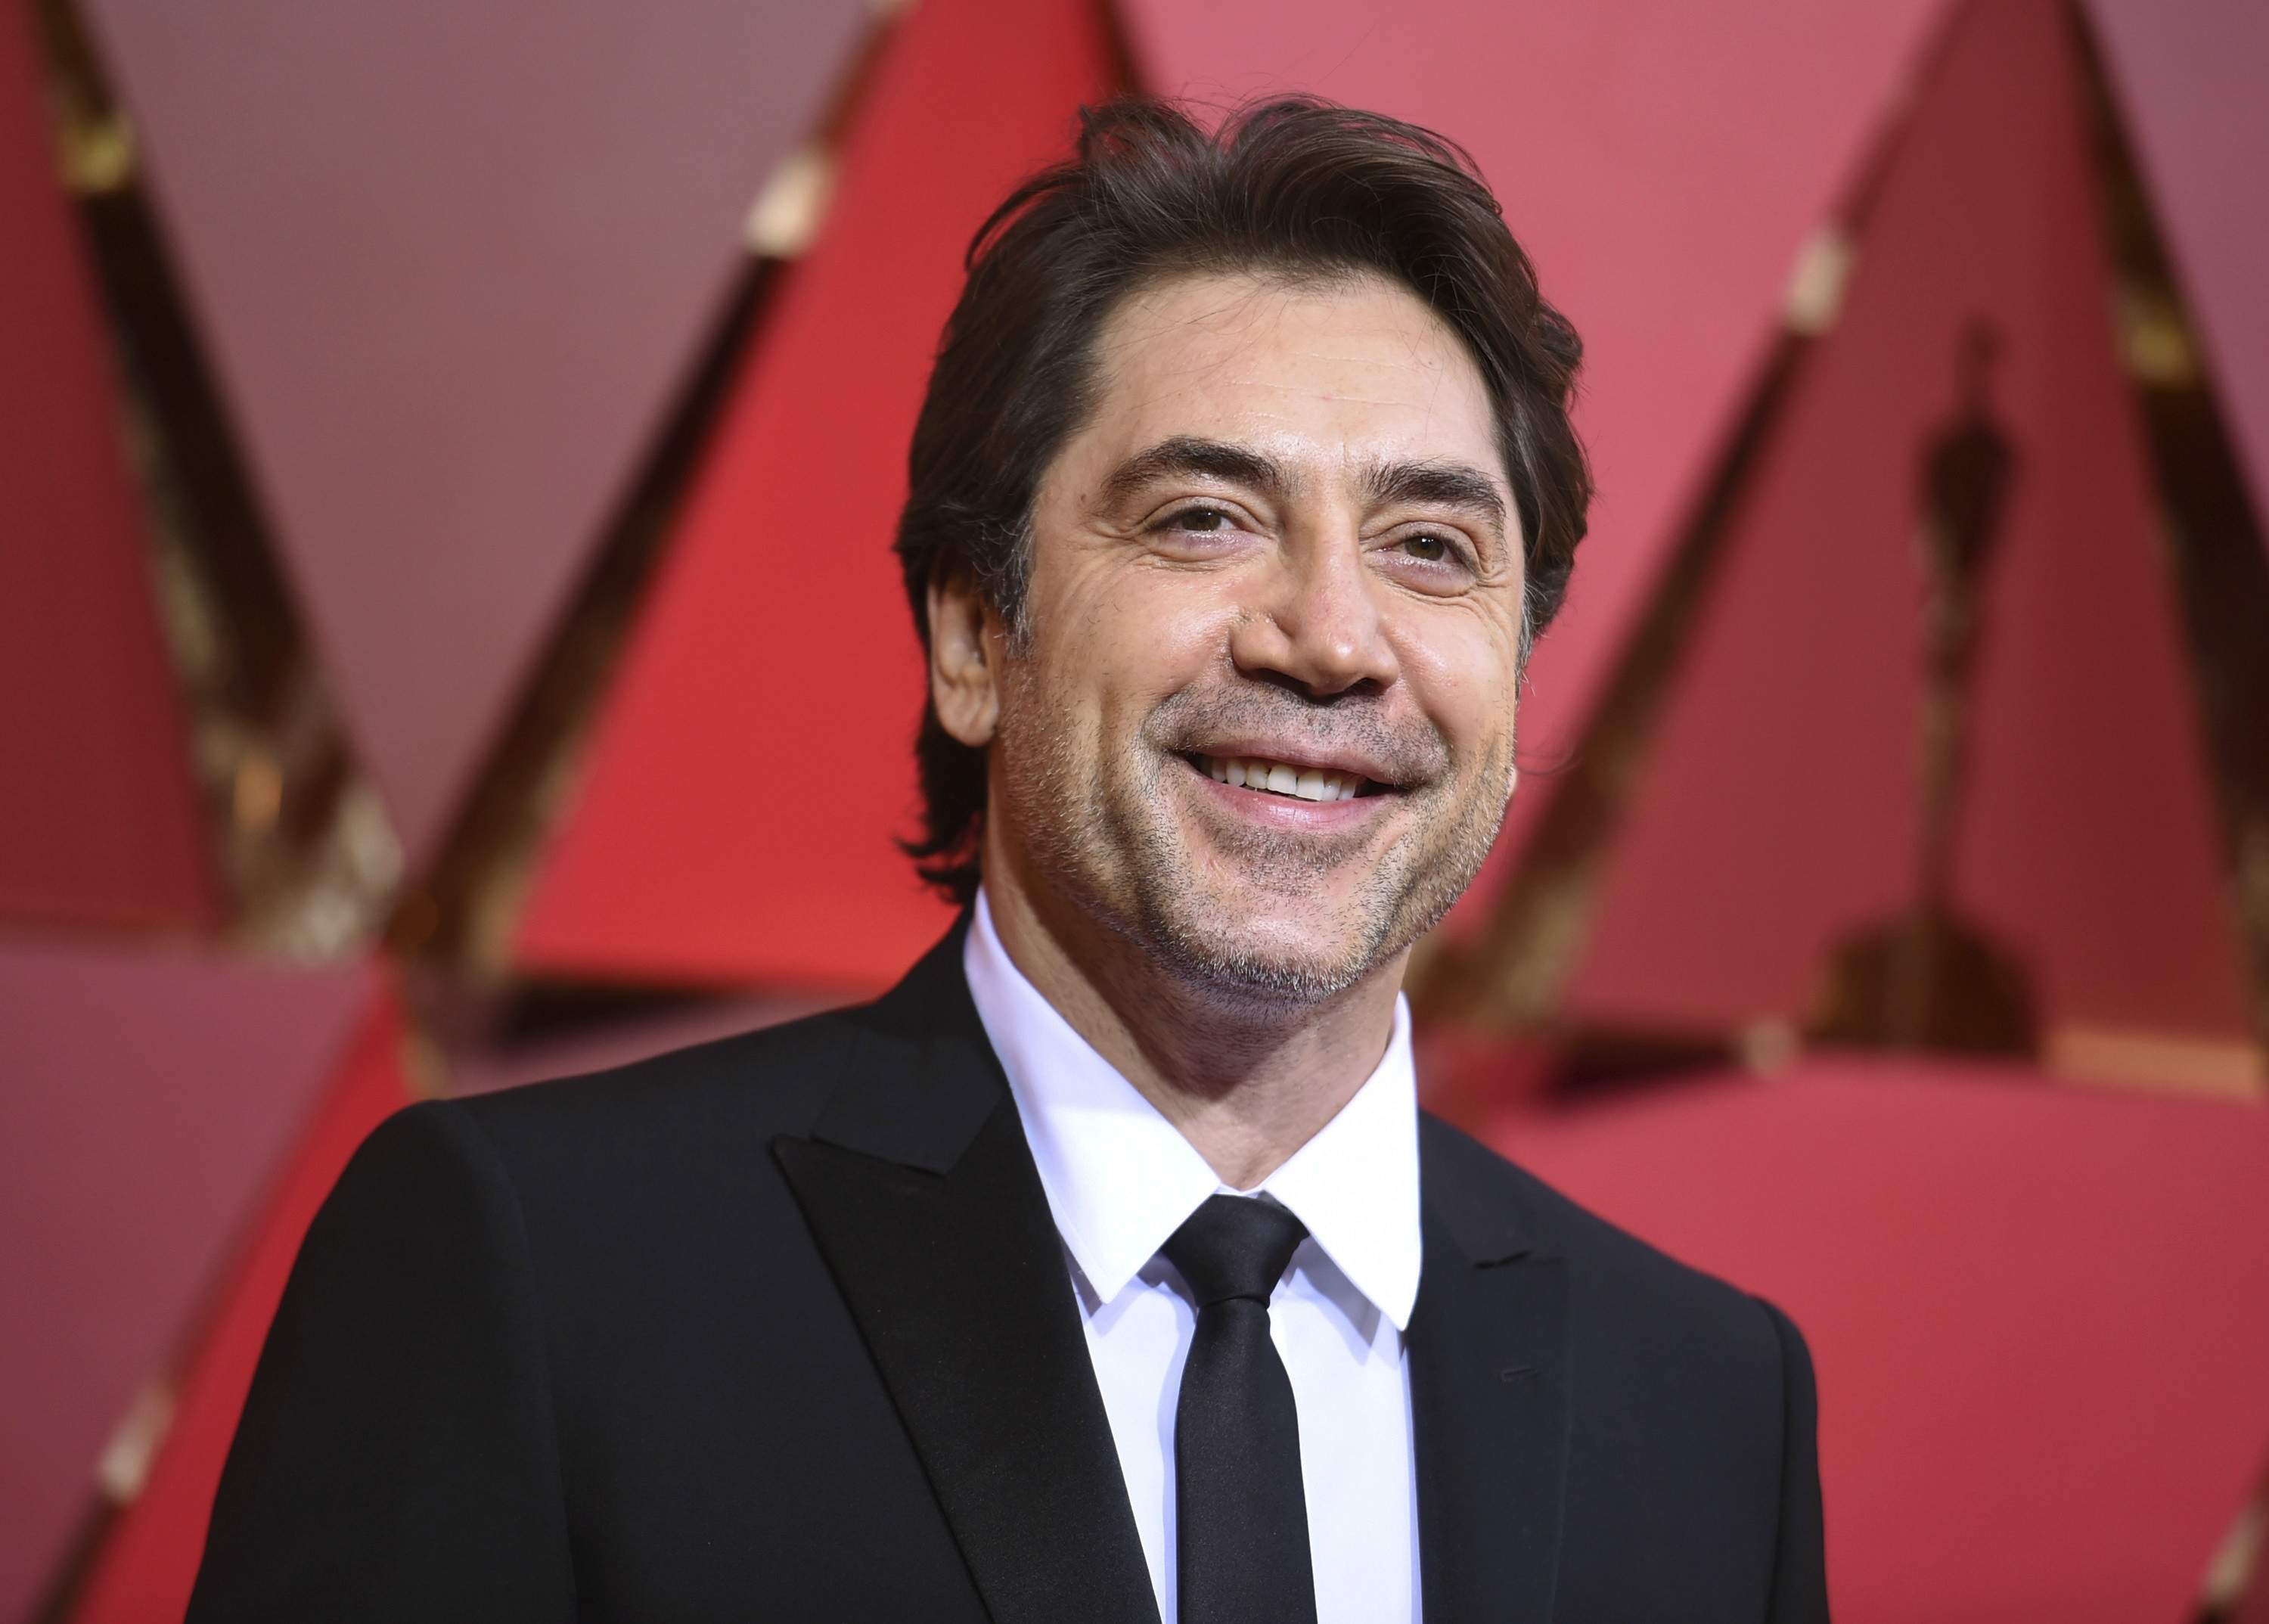 Javier Bardem arrives at the Oscars on Sunday, Feb. 26, 2017, at the Dolby Theatre in Los Angeles. THE ASSOCIATED PRESS